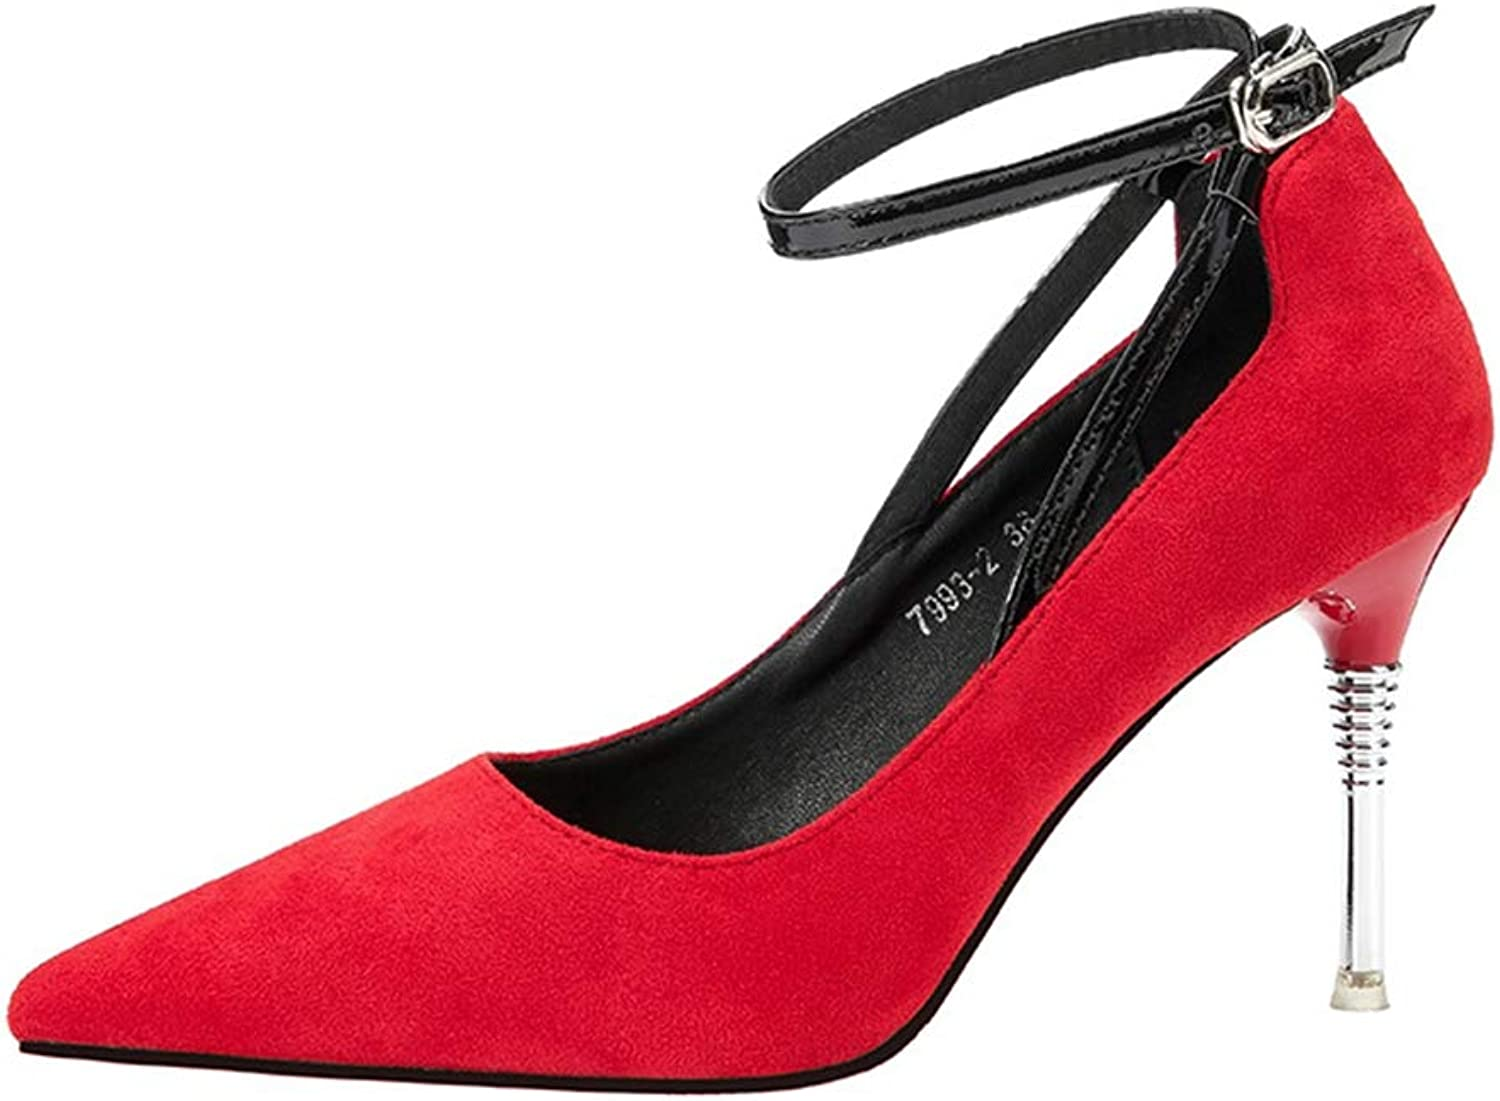 Drew Toby Women Pumps Fashion Pointed Toe Shallow Suede Ankle Strap Elegant High Heels